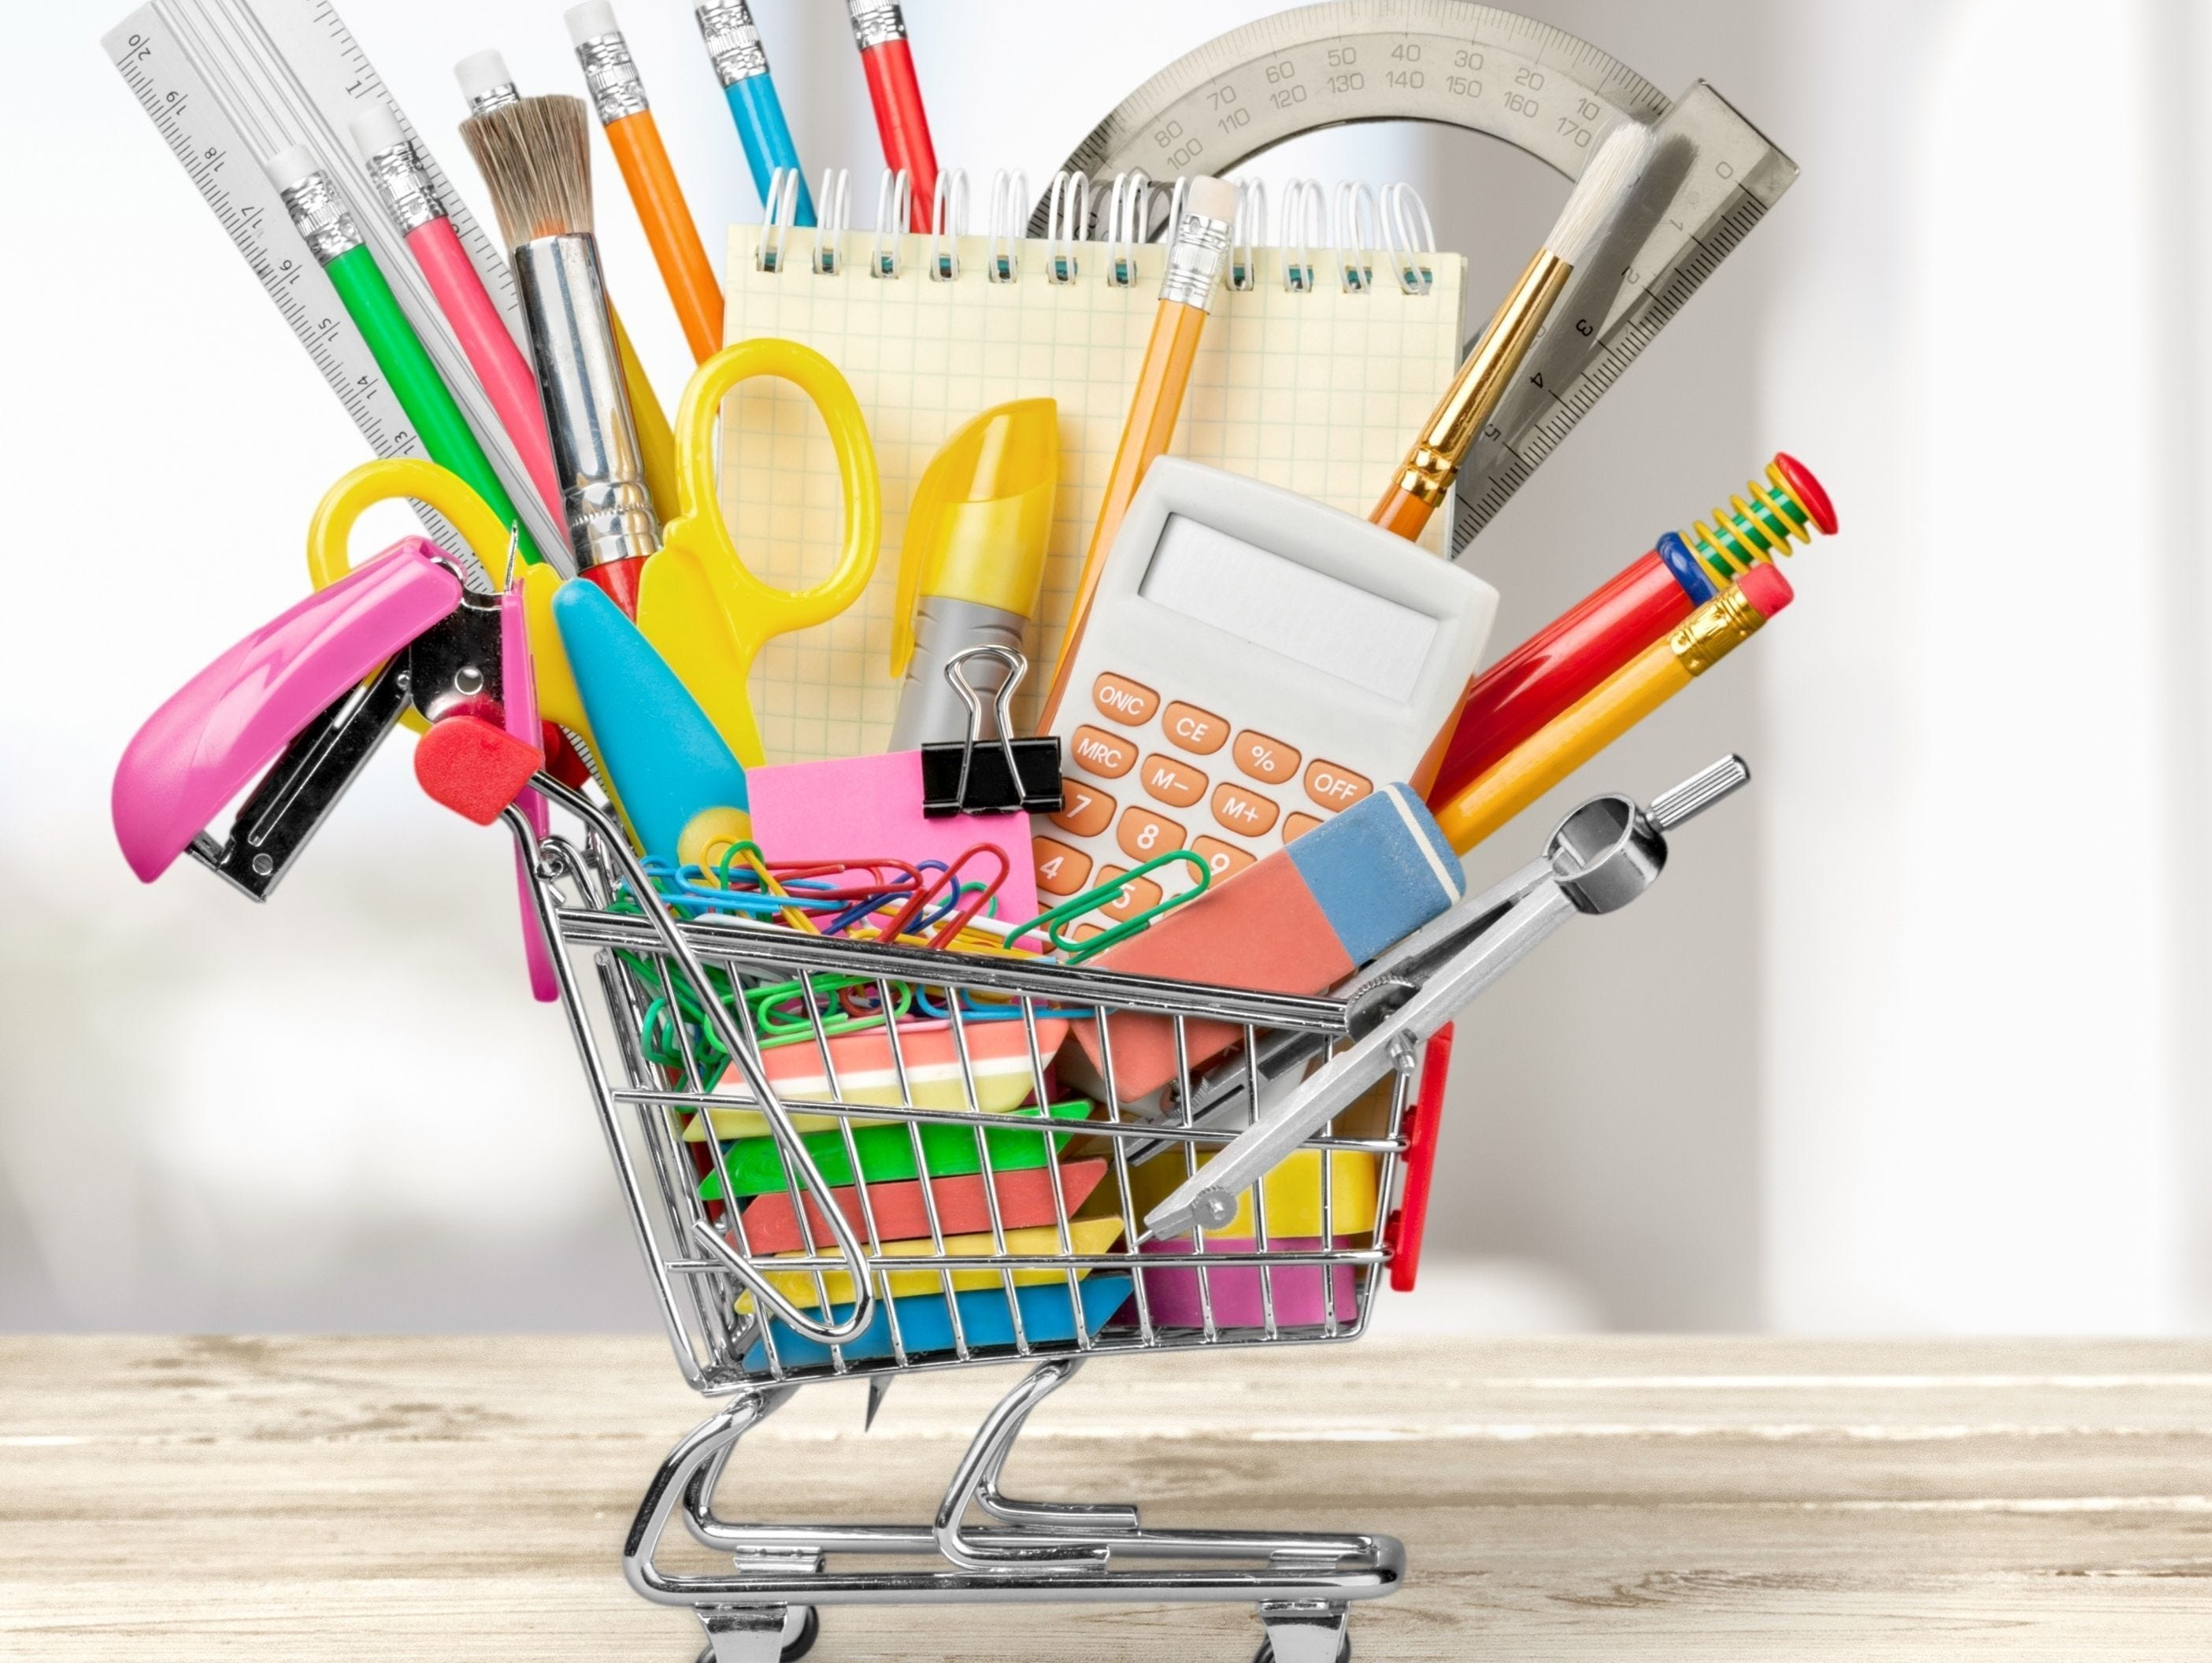 School supplies, clothing, shoes, lunches and so much more to get for back to school. Enter 8/8-8/23